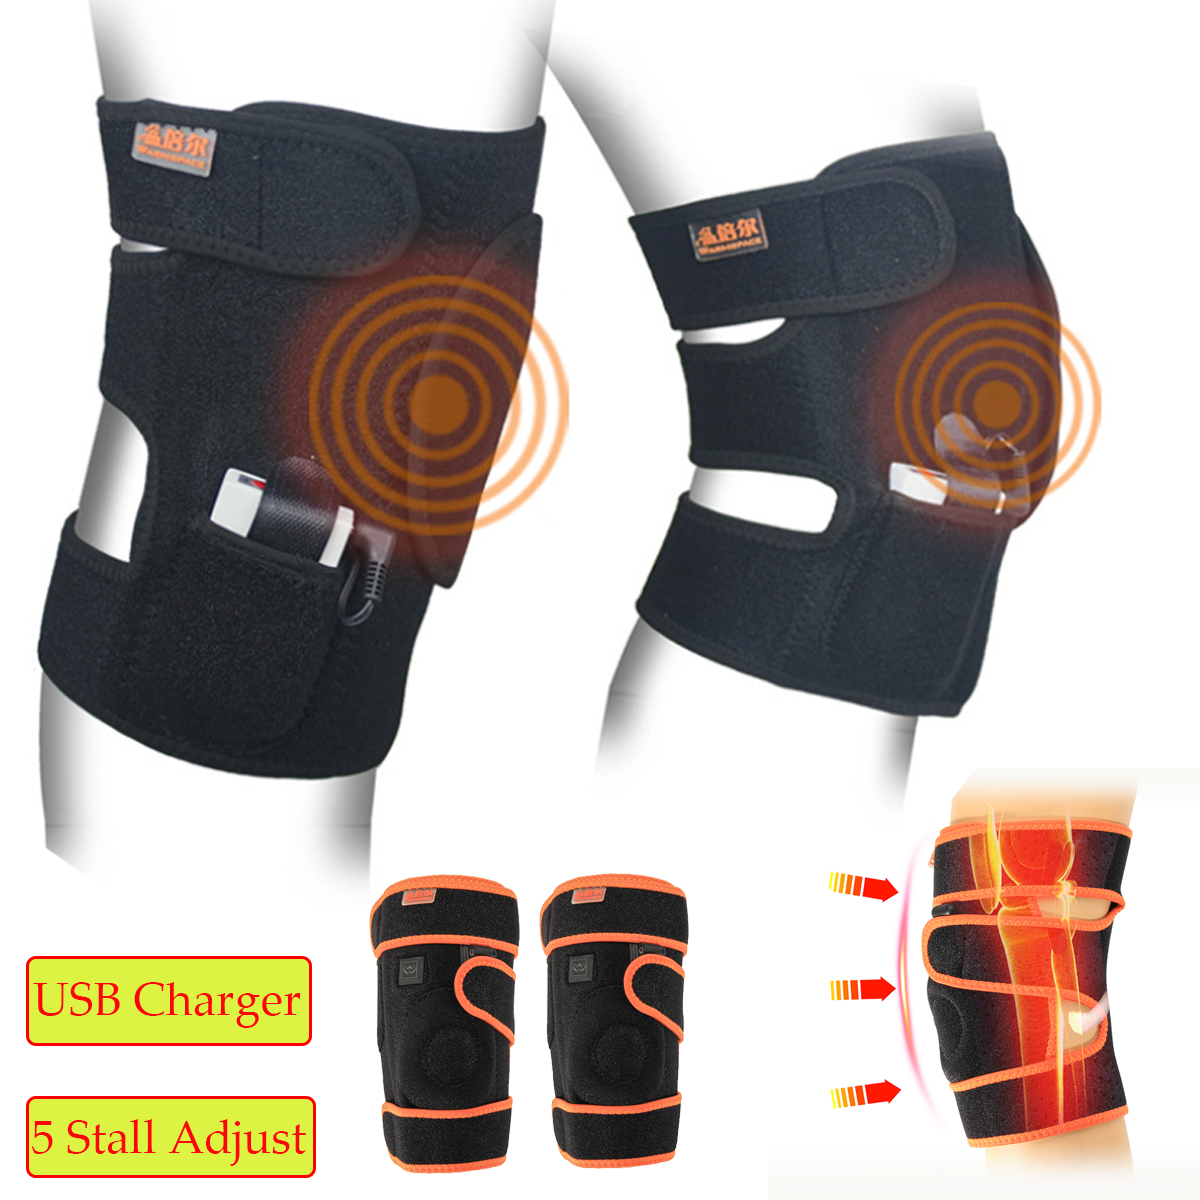 Warm Electric Heating Kneepad Outdoor Ski Sport Battery USB Adjustable Knee Pads